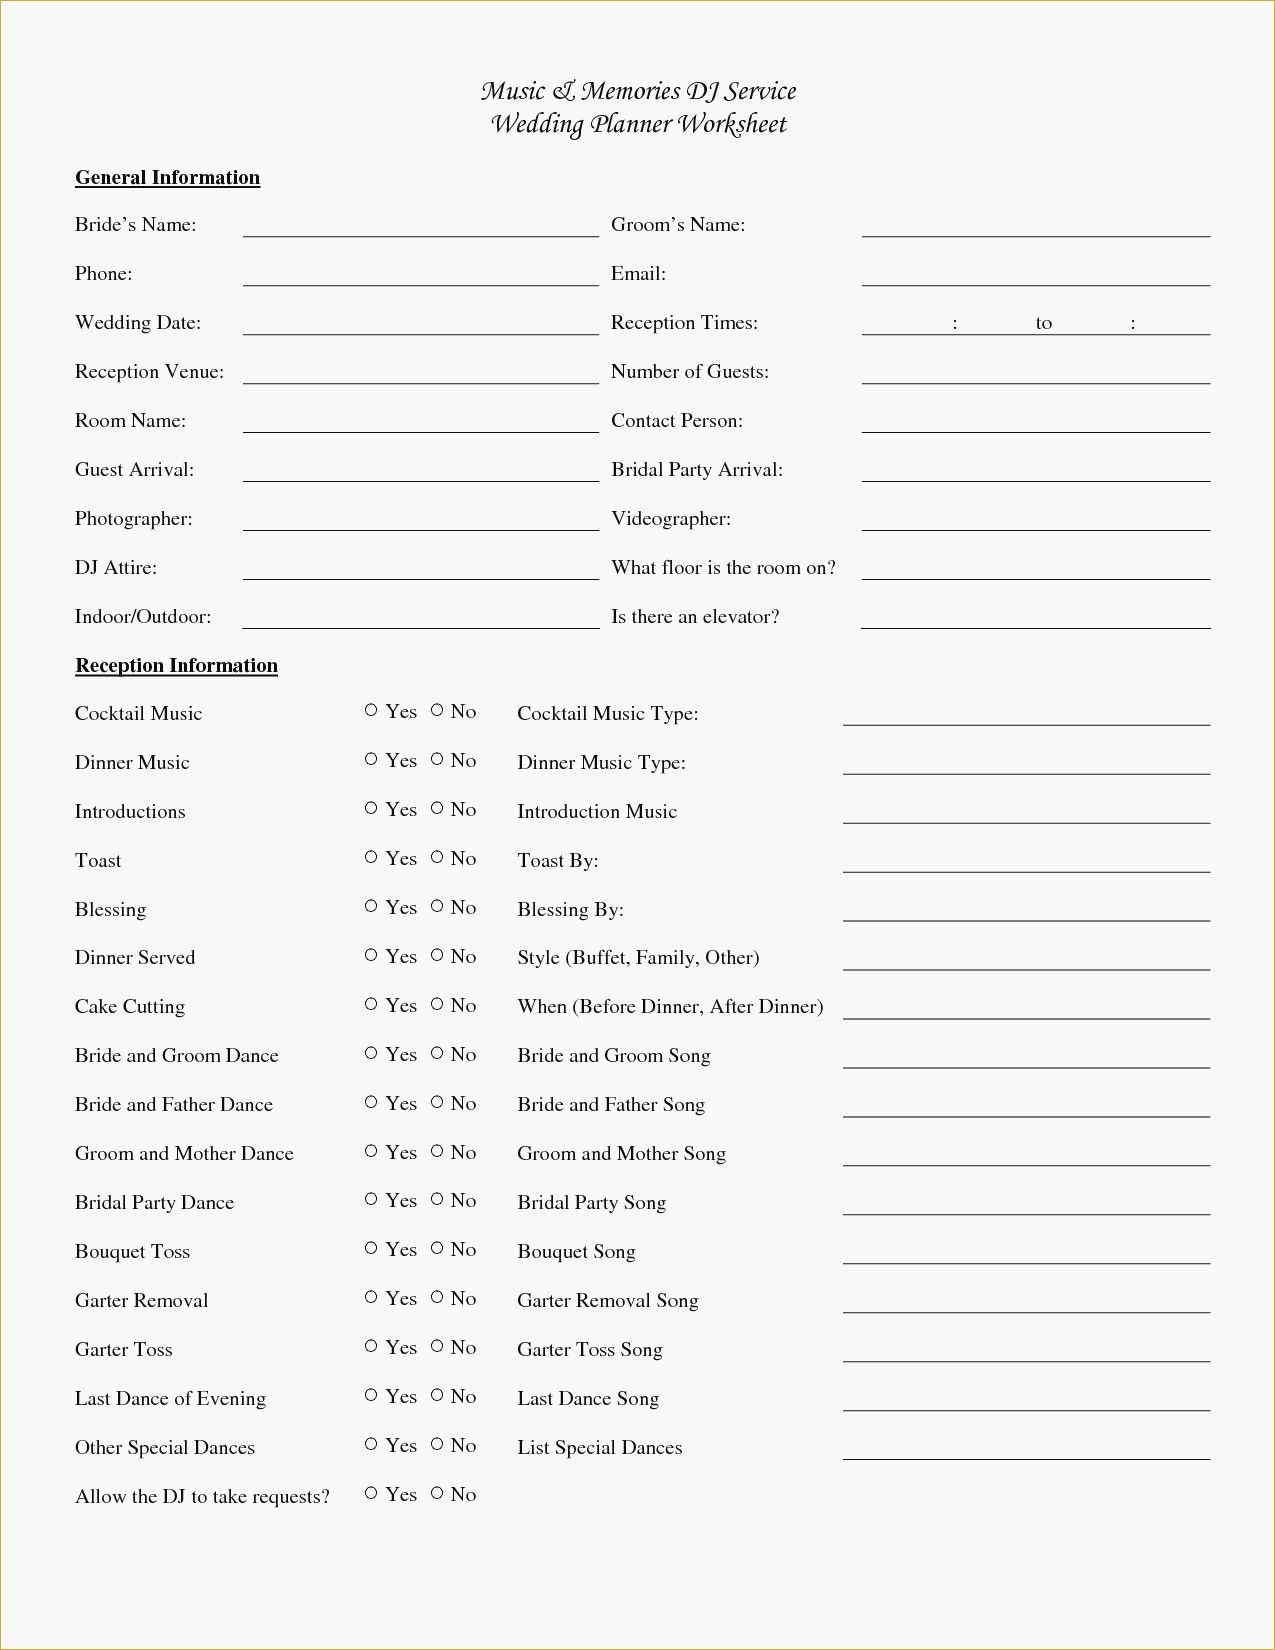 Wedding Planning Spreadsheet Or Free Printable Wedding Planner - Free Printable Wedding Planner Workbook